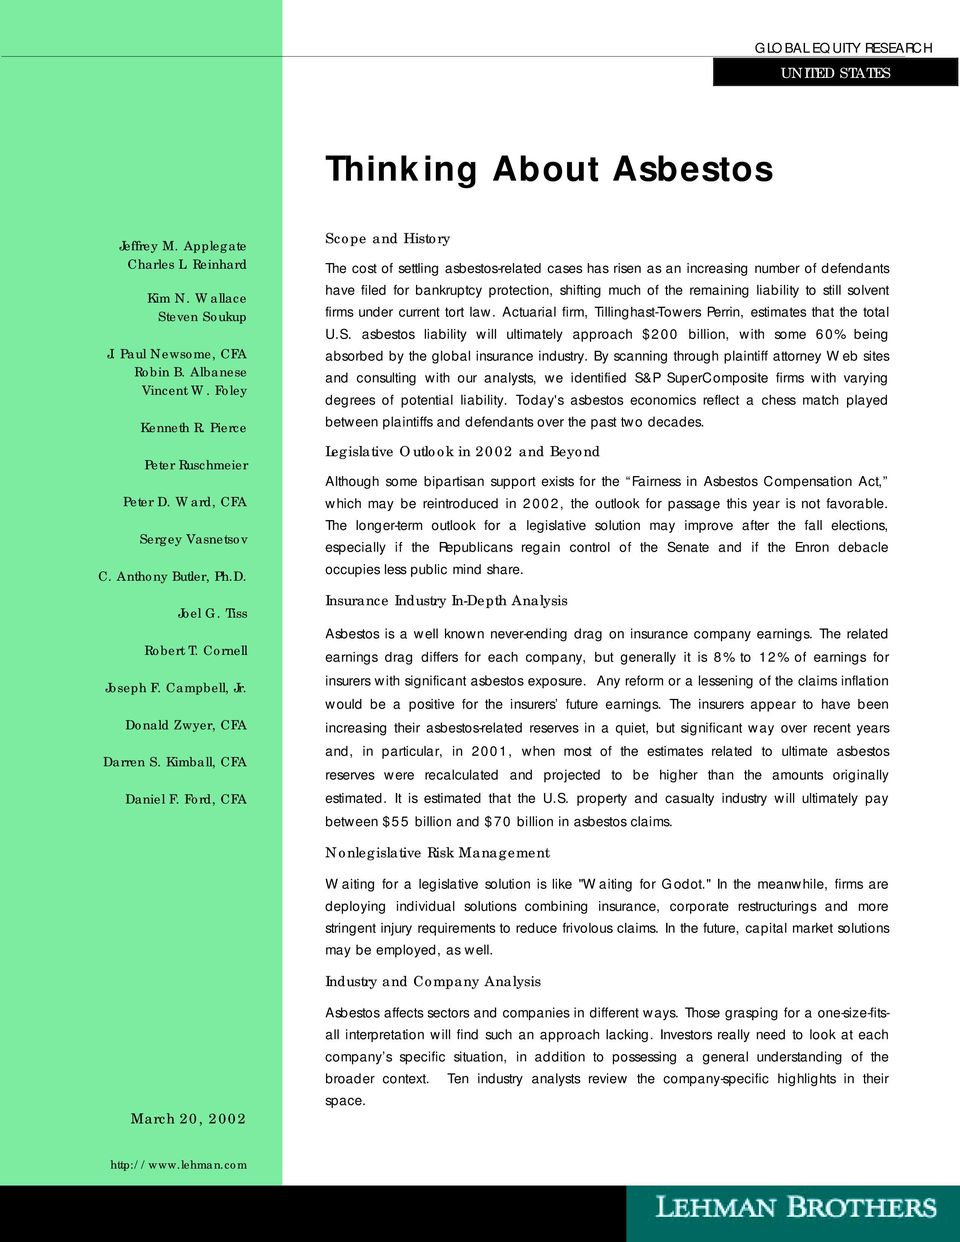 Ford, CFA Scope and History The cost of settling asbestos-related cases has risen as an increasing number of defendants have filed for bankruptcy protection, shifting much of the remaining liability